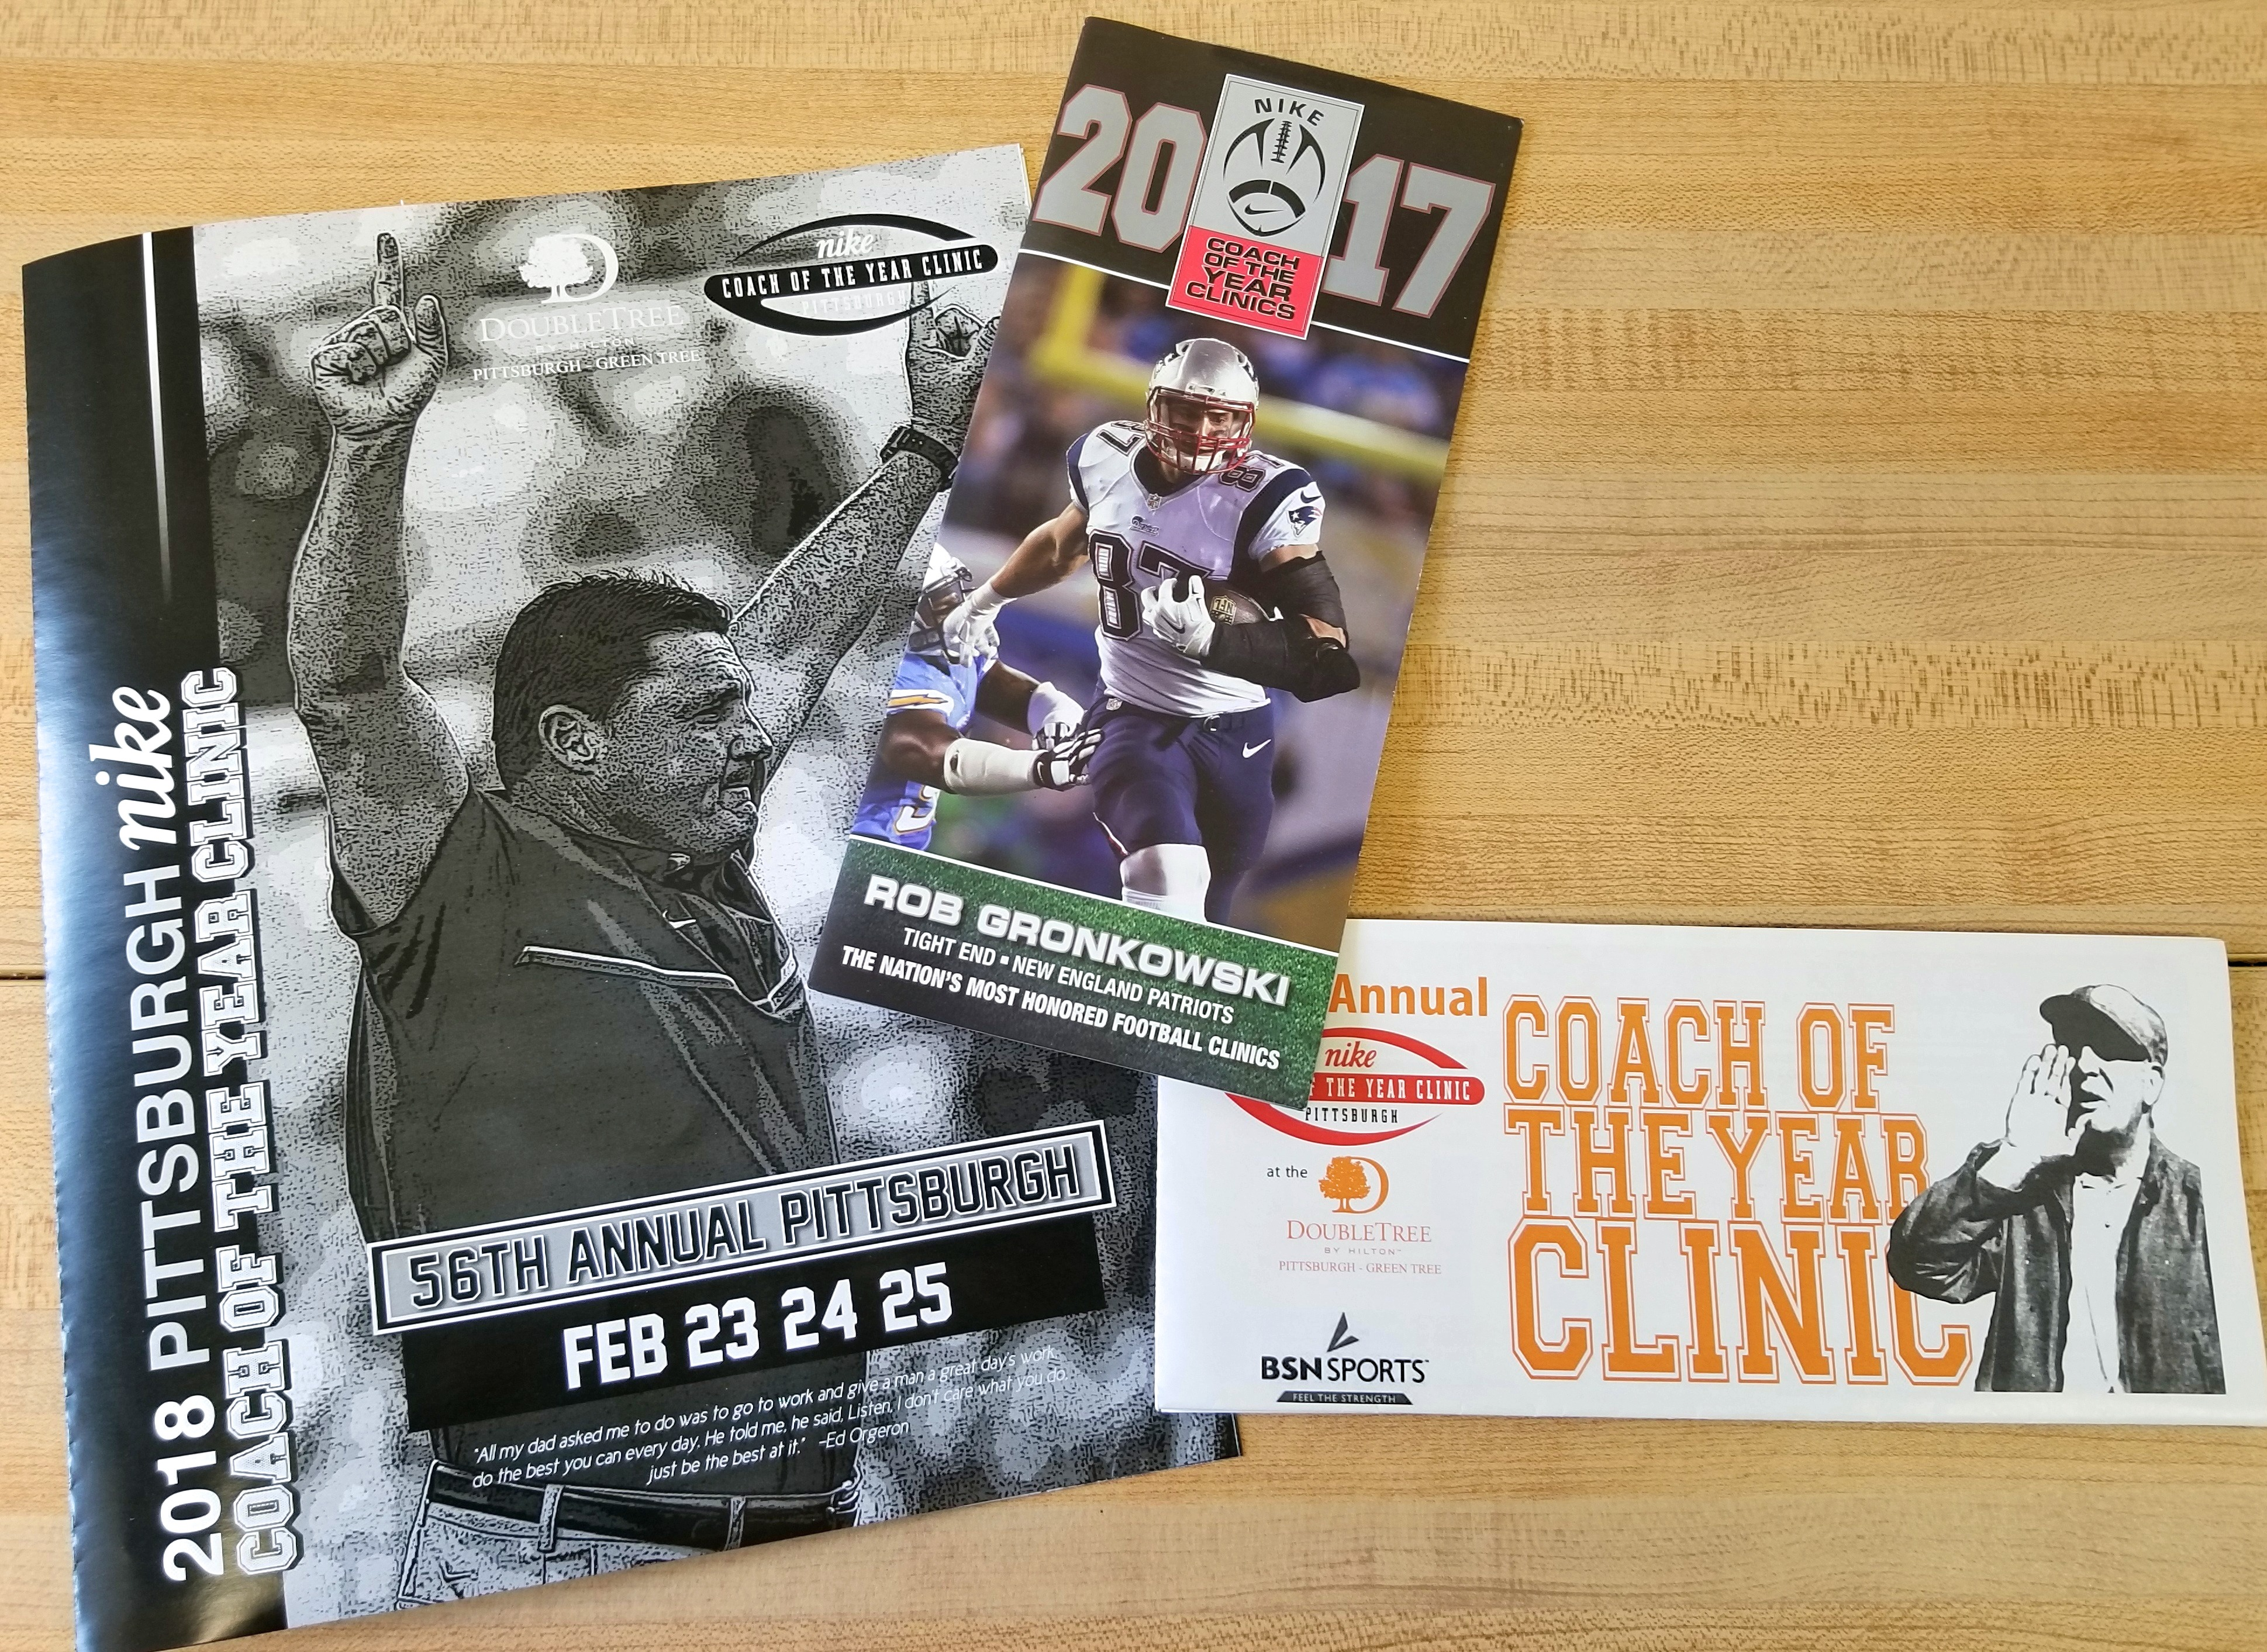 Product samples designed and printed by the Minuteman Press printing franchise in Cranberry Township, PA for the Nike Coach of the Year Clinic. http://www.minutemanpressfranchise.com